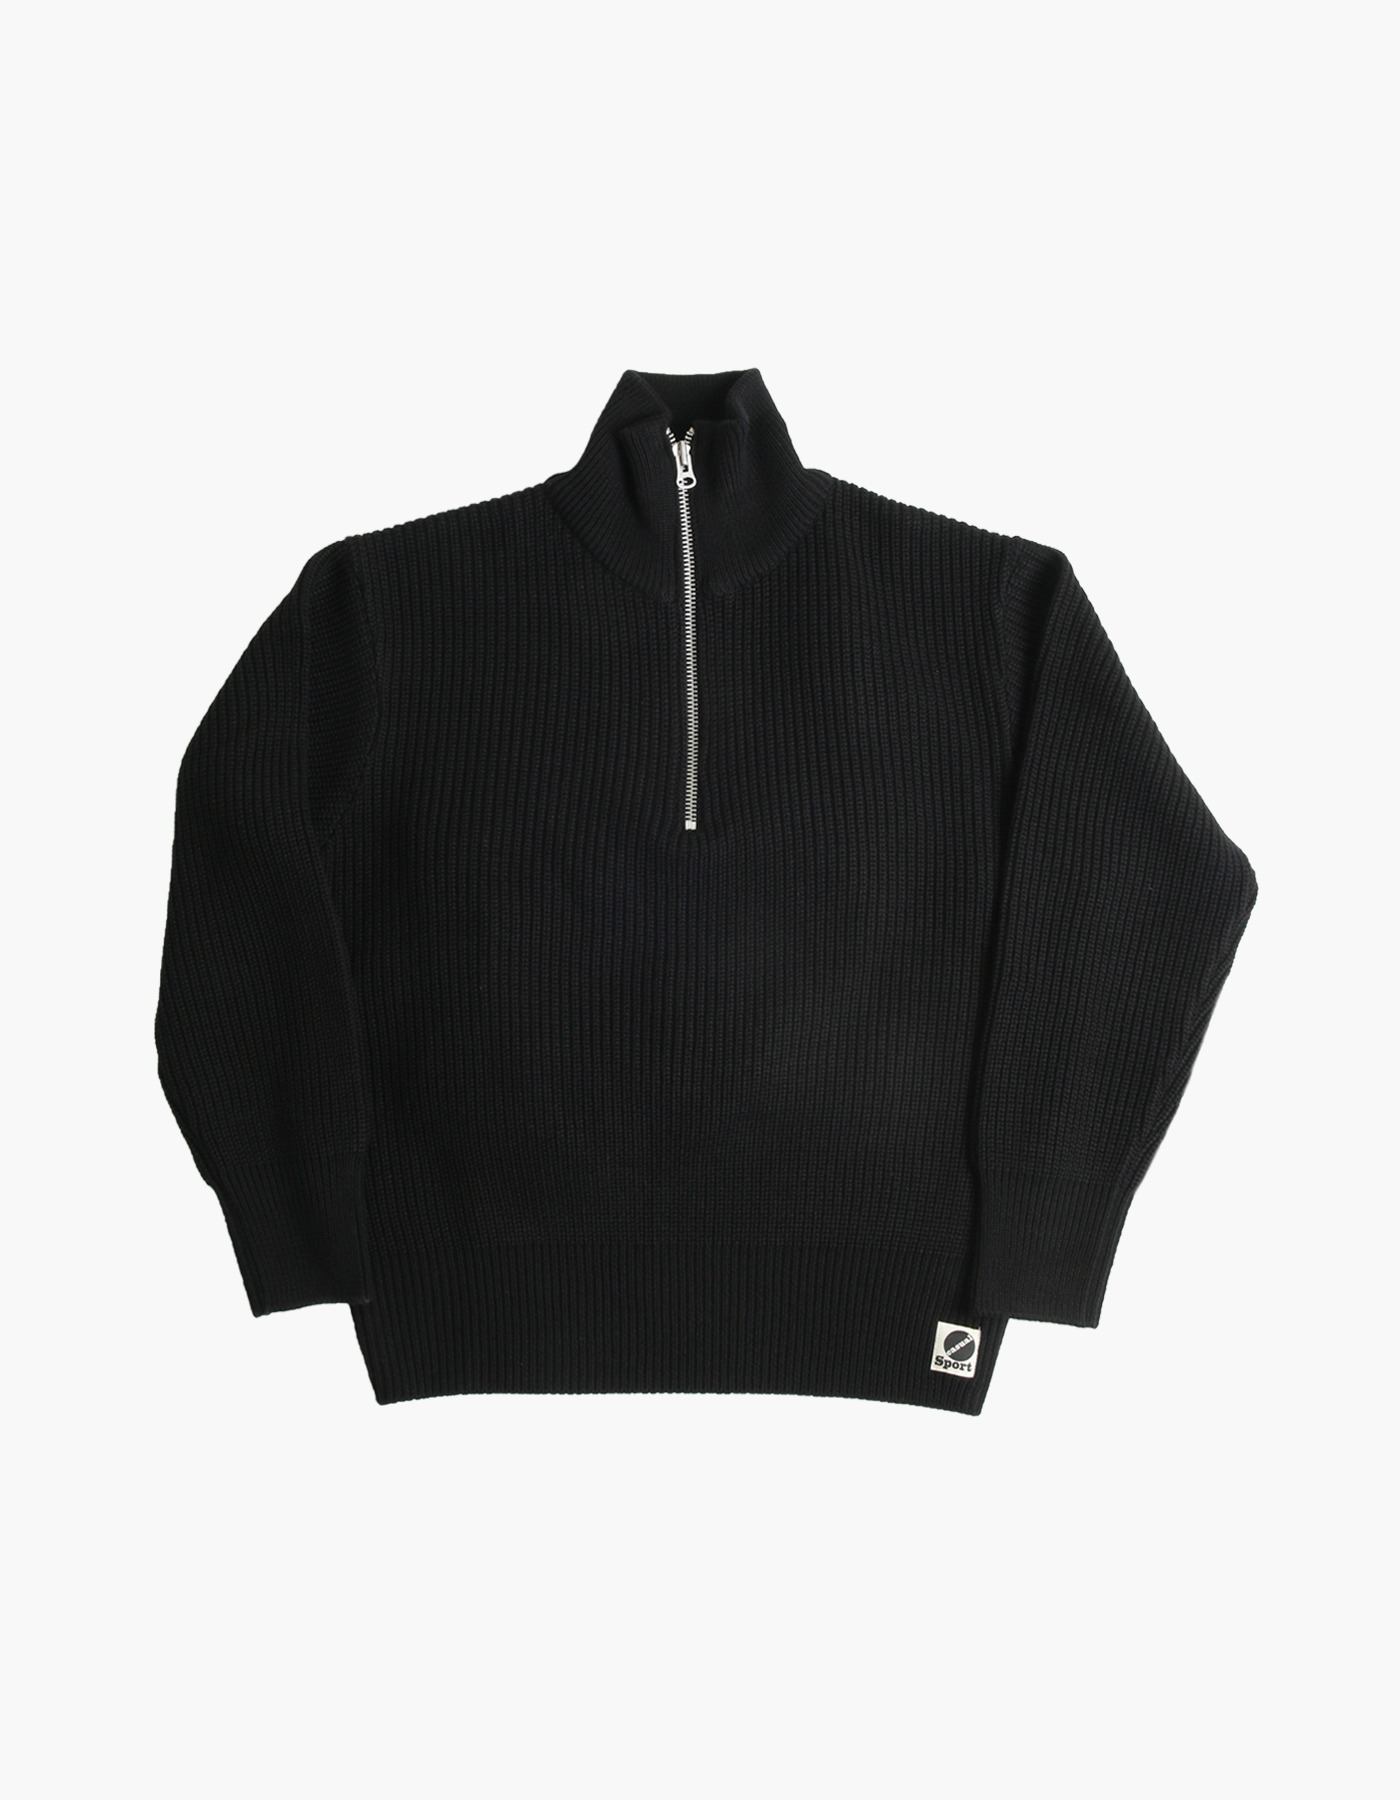 S&C WOOL HALF-ZIP/ BLACK